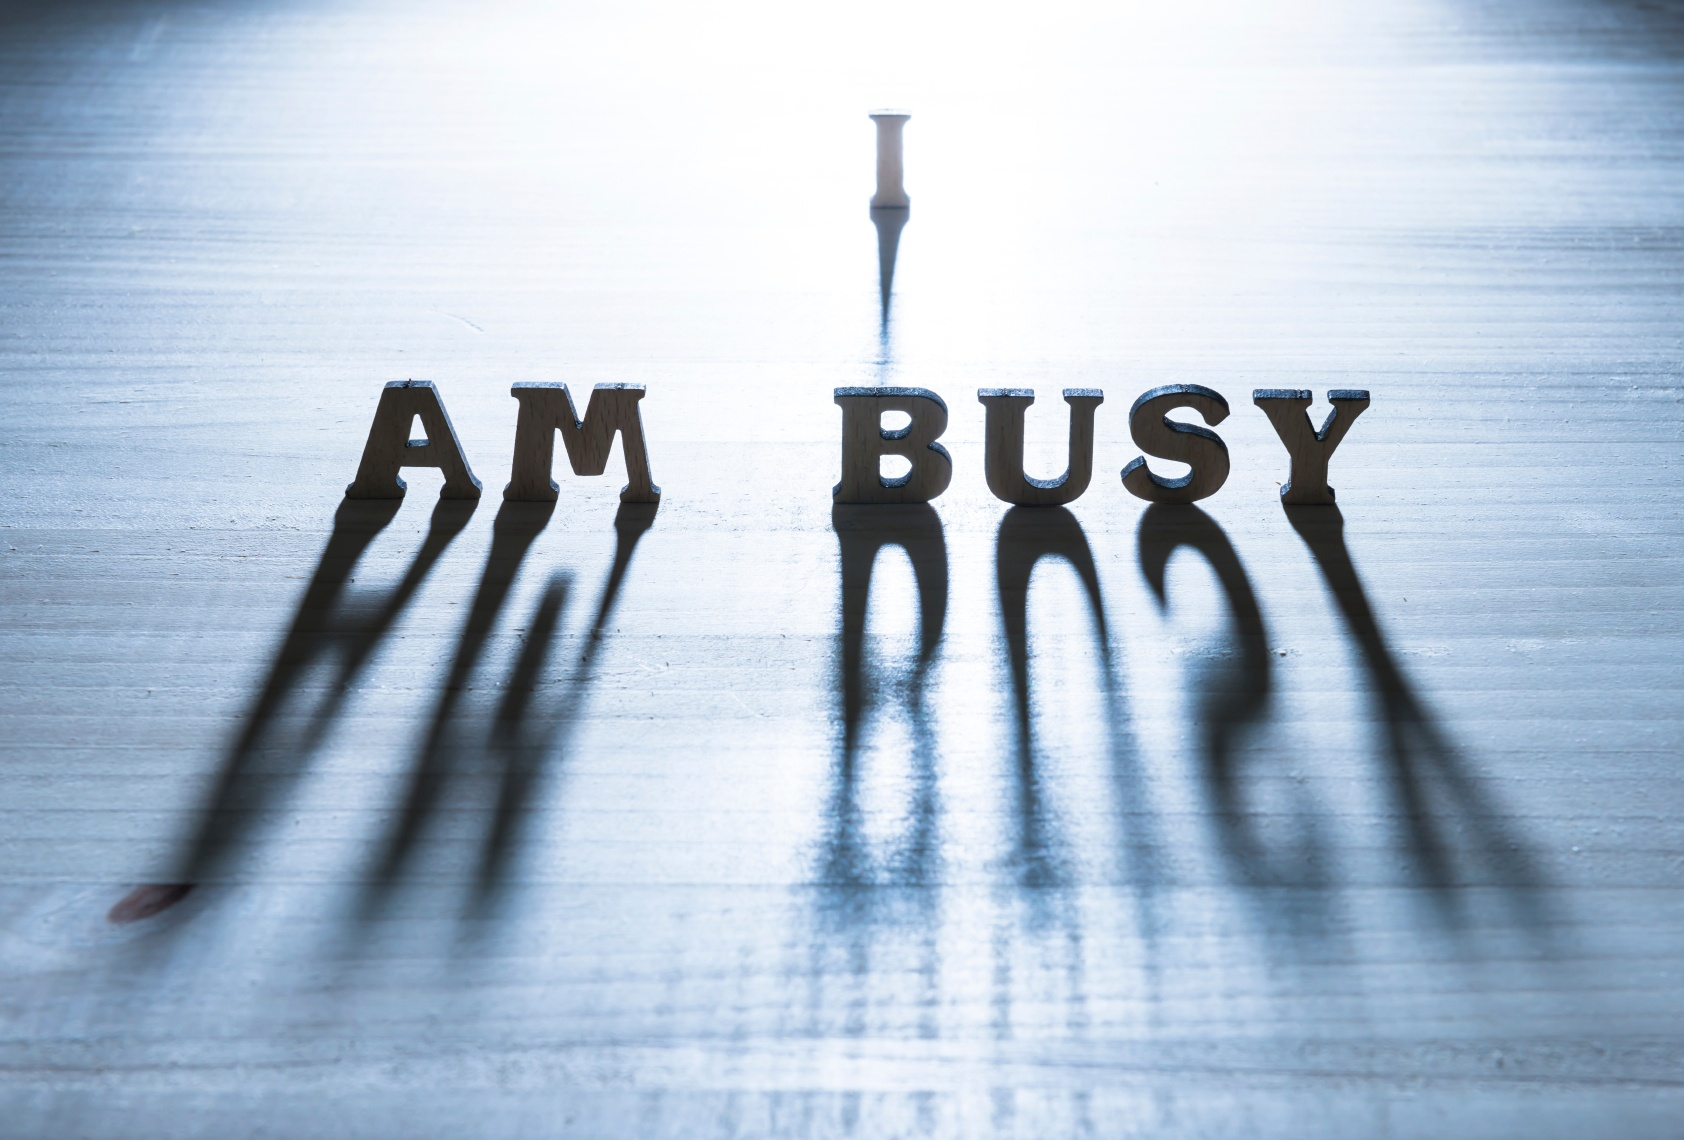 We_Are_Just_Too_Busy.jpg